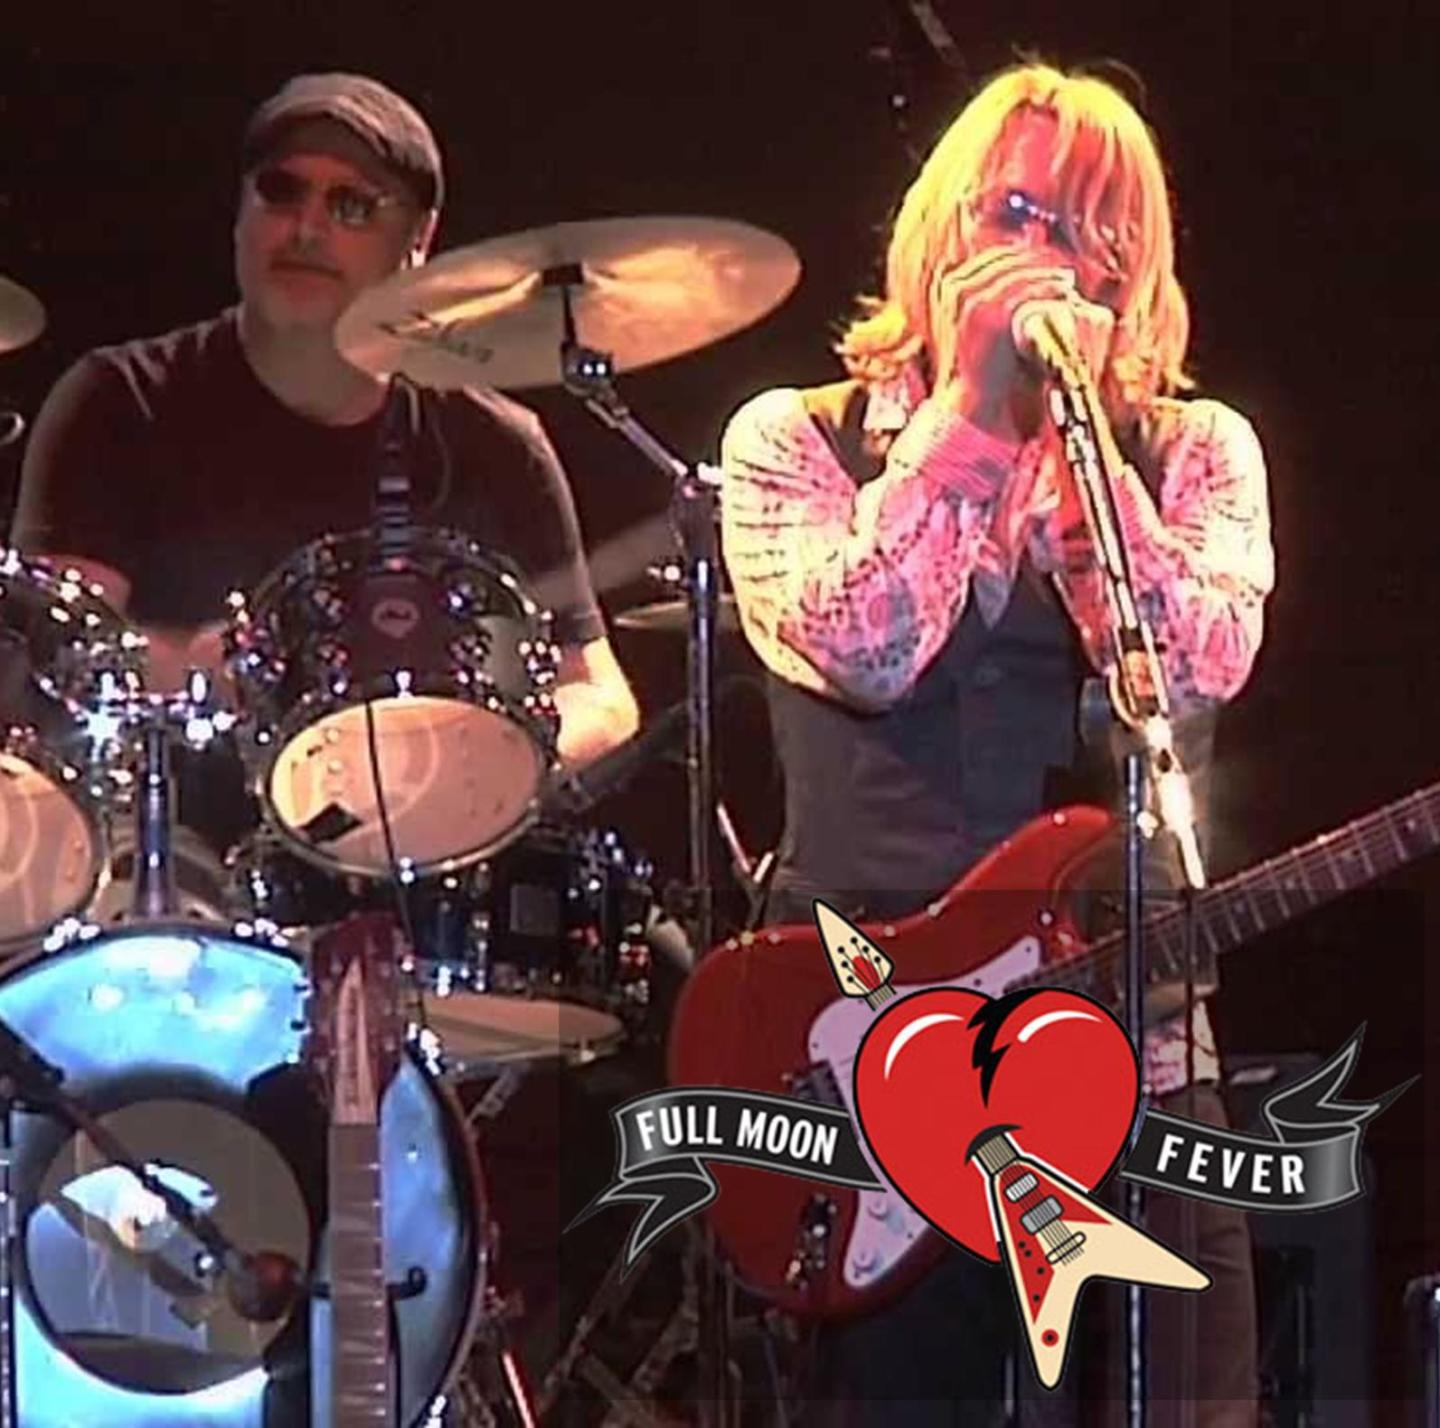 Full Moon Fever - A Tribute to Tom Petty